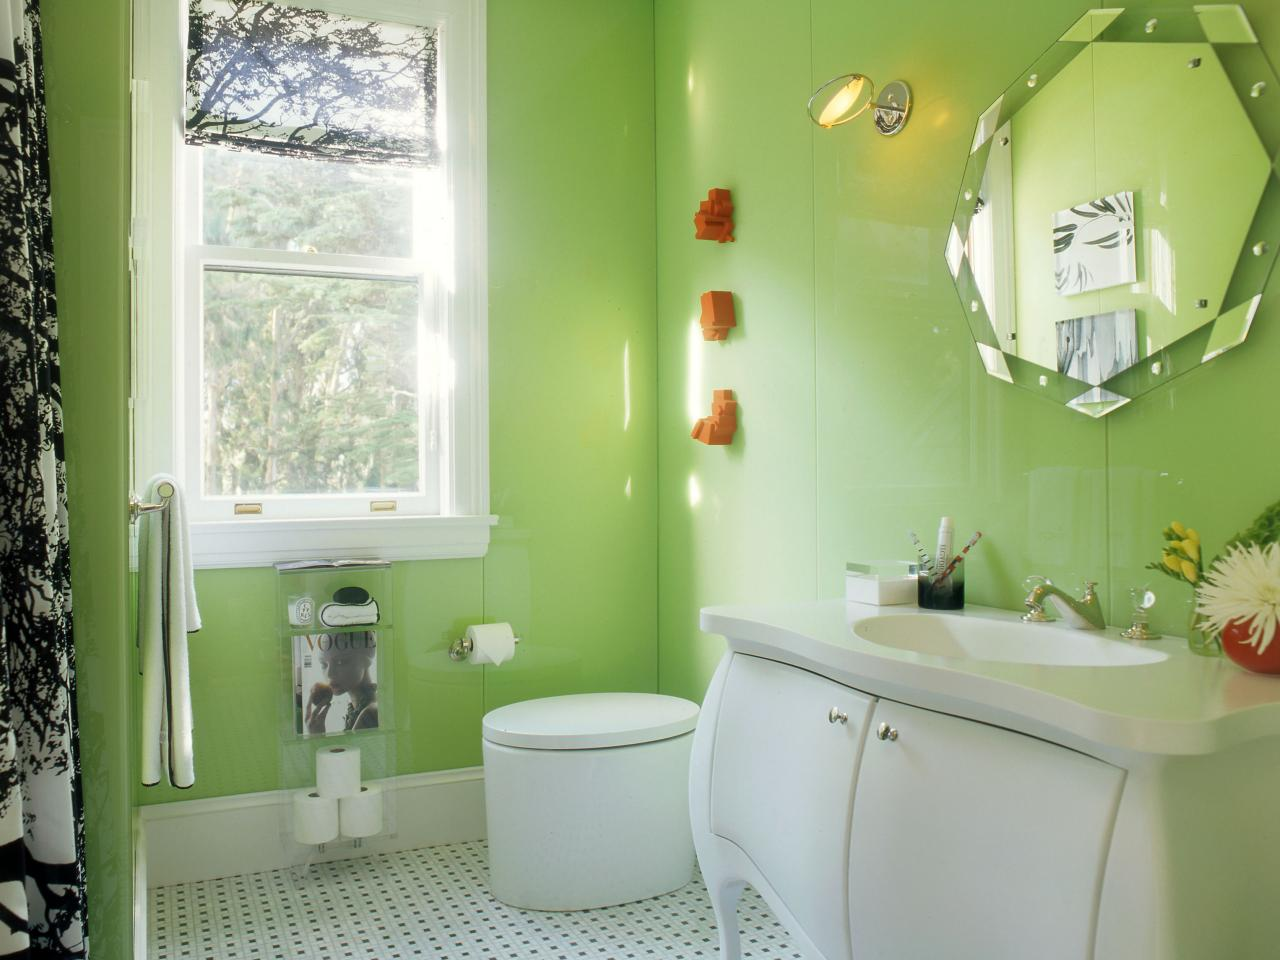 Dainty Cabinet and Toilet also Green Paint Bathroom Wall Ideas